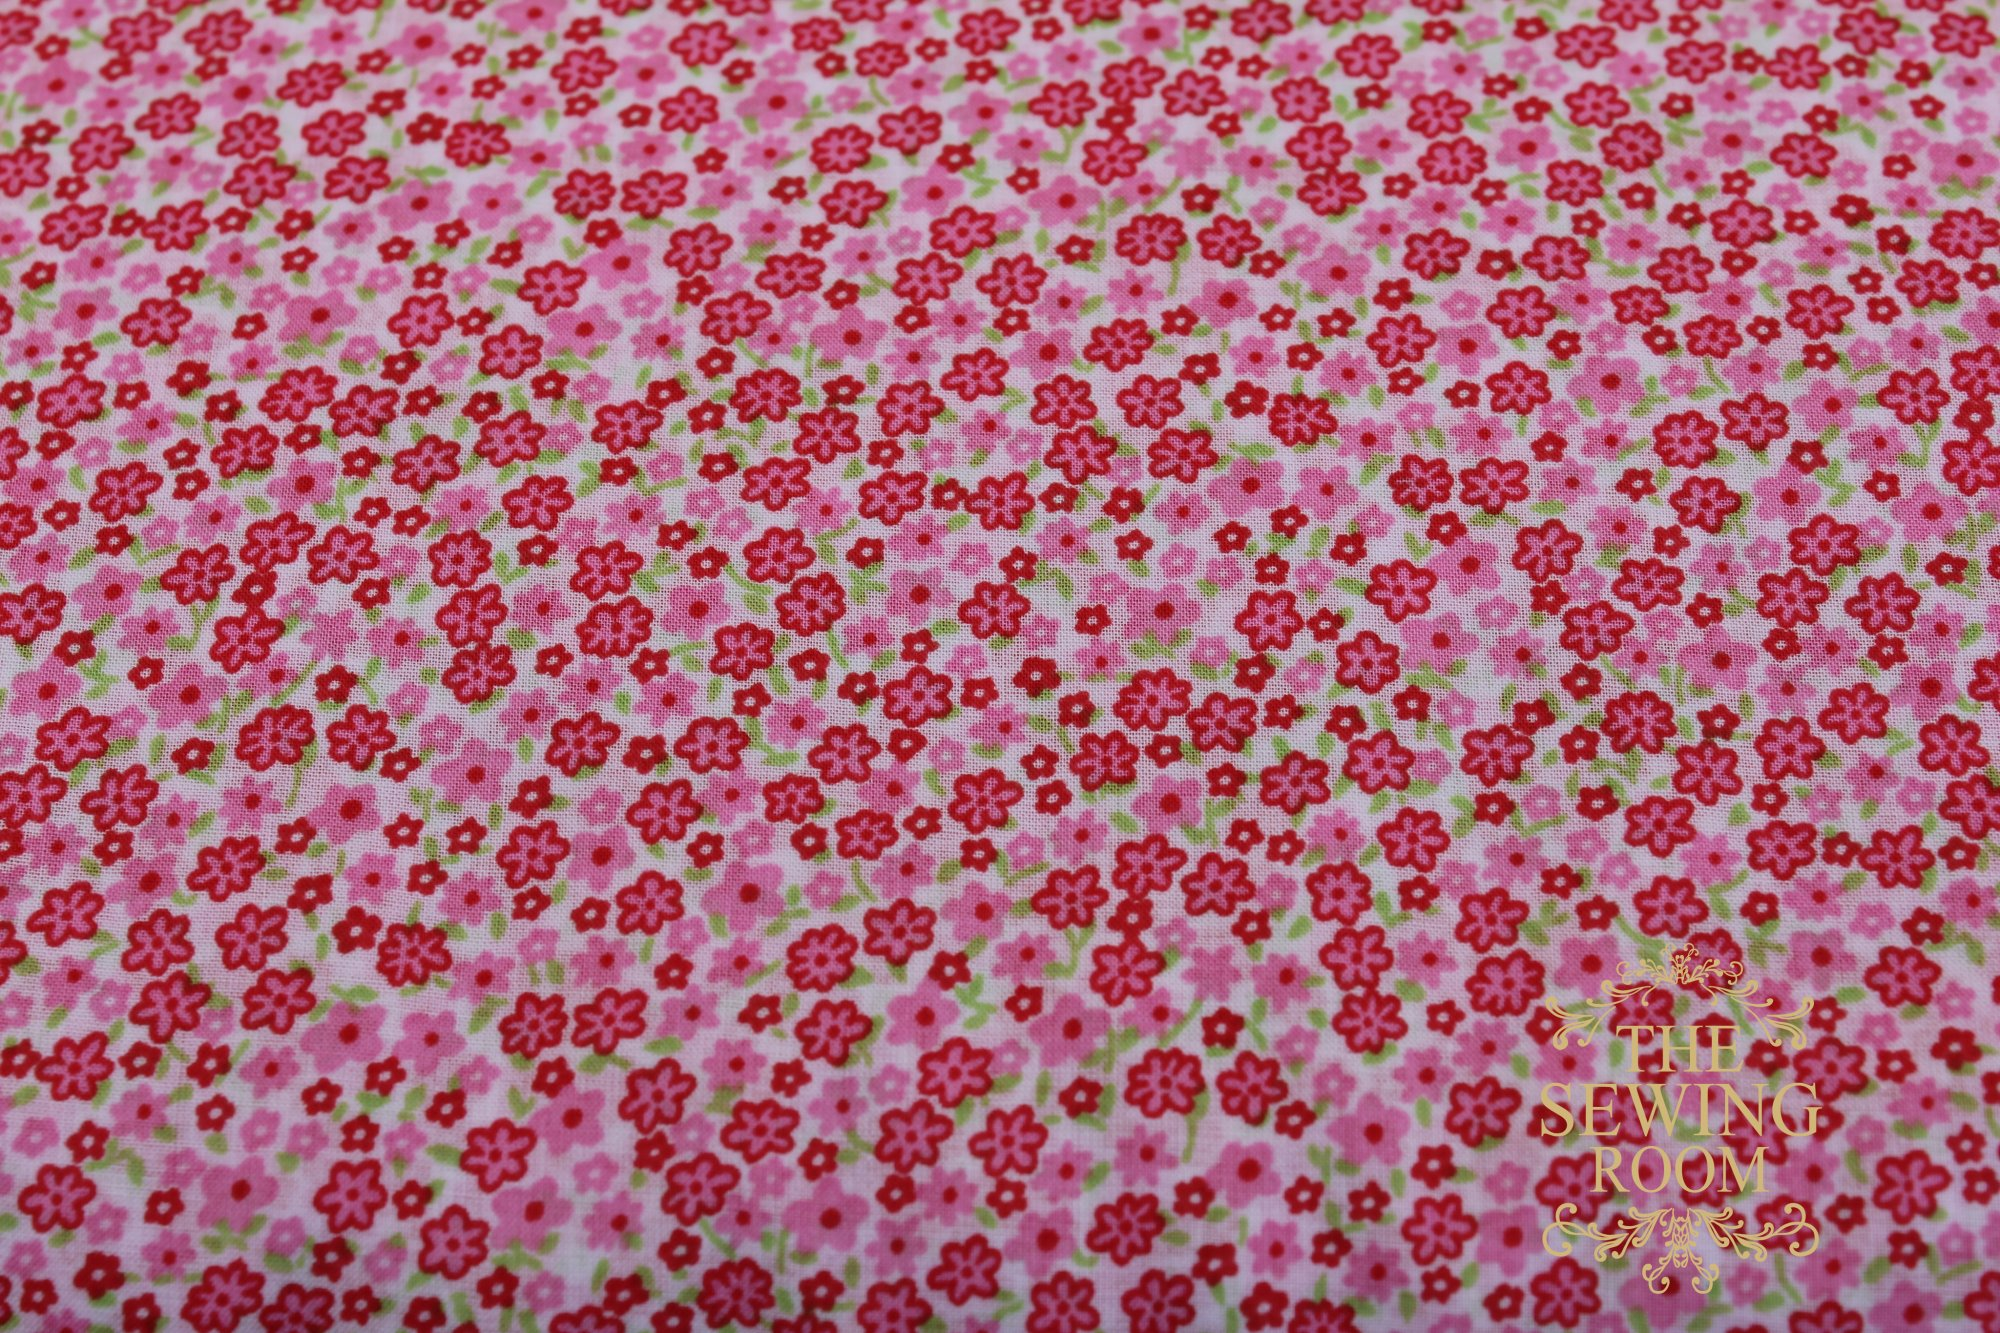 Tiffany Lawn Pink and Green Floral Fabric by Spechler-Vogel Textiles